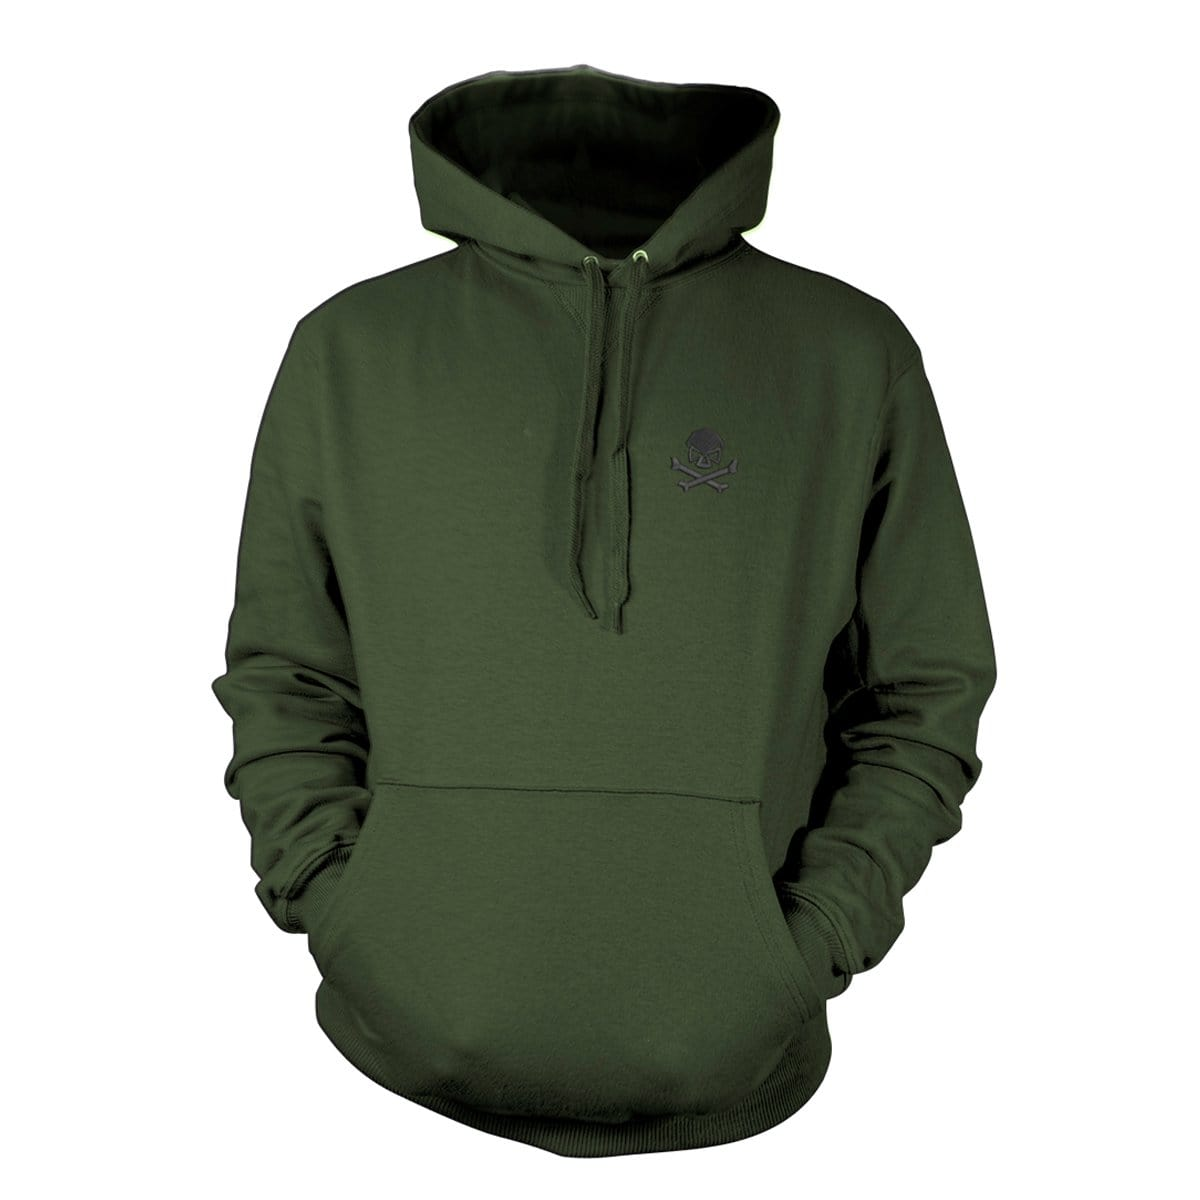 Skull & Bones Hoodie (Embroidered) - Military Green/Black - Hoodies - Pipe Hitters Union